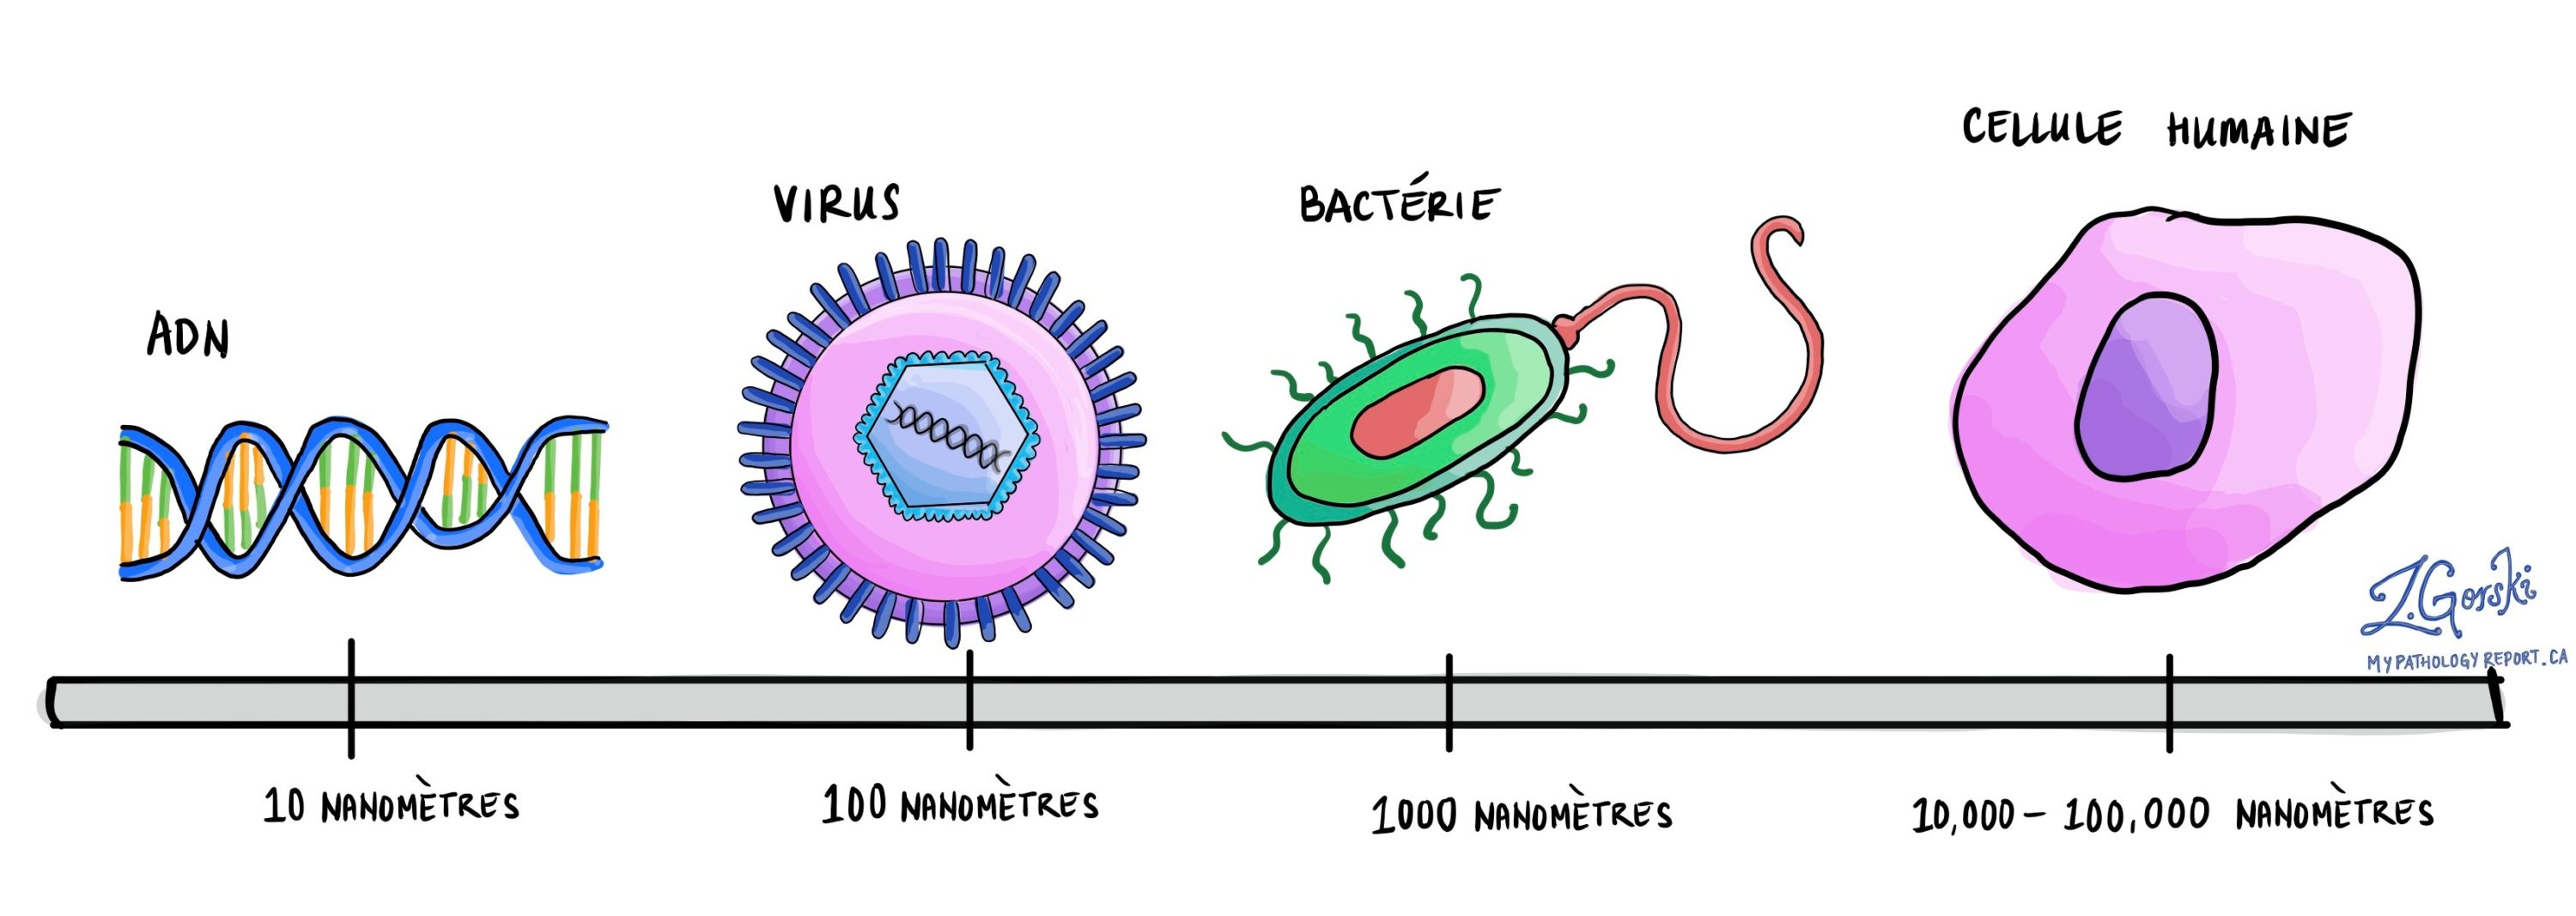 Virus vs bacteria vs human cell french